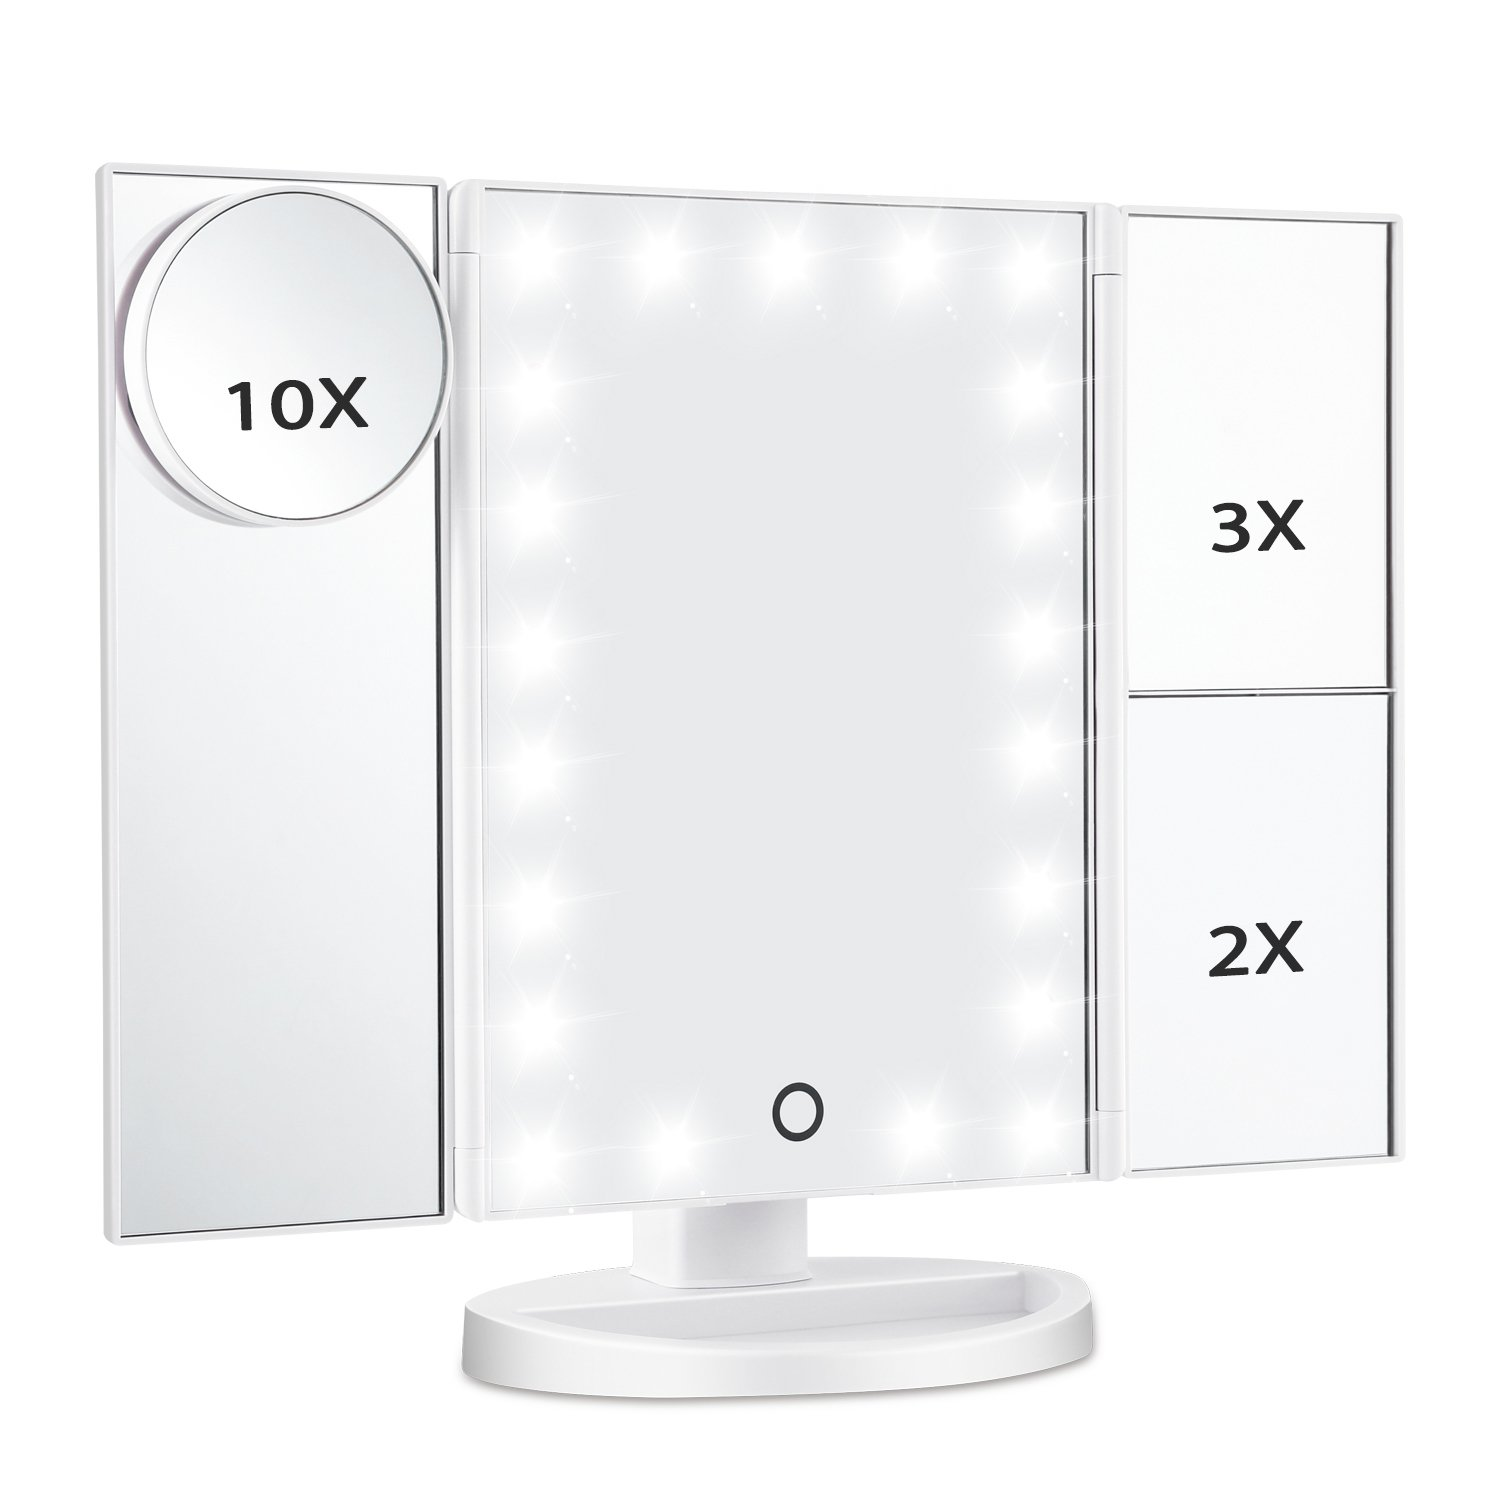 Magicfly Led Lighted Makeup Mirror, 10X 3X 2X 1X Magnifying Mirror 21 LED Tri-Fold Vanity Mirror with Touch Screen and 180° Adjustable Stand, Brightness Travel Beauty Mirror (White)